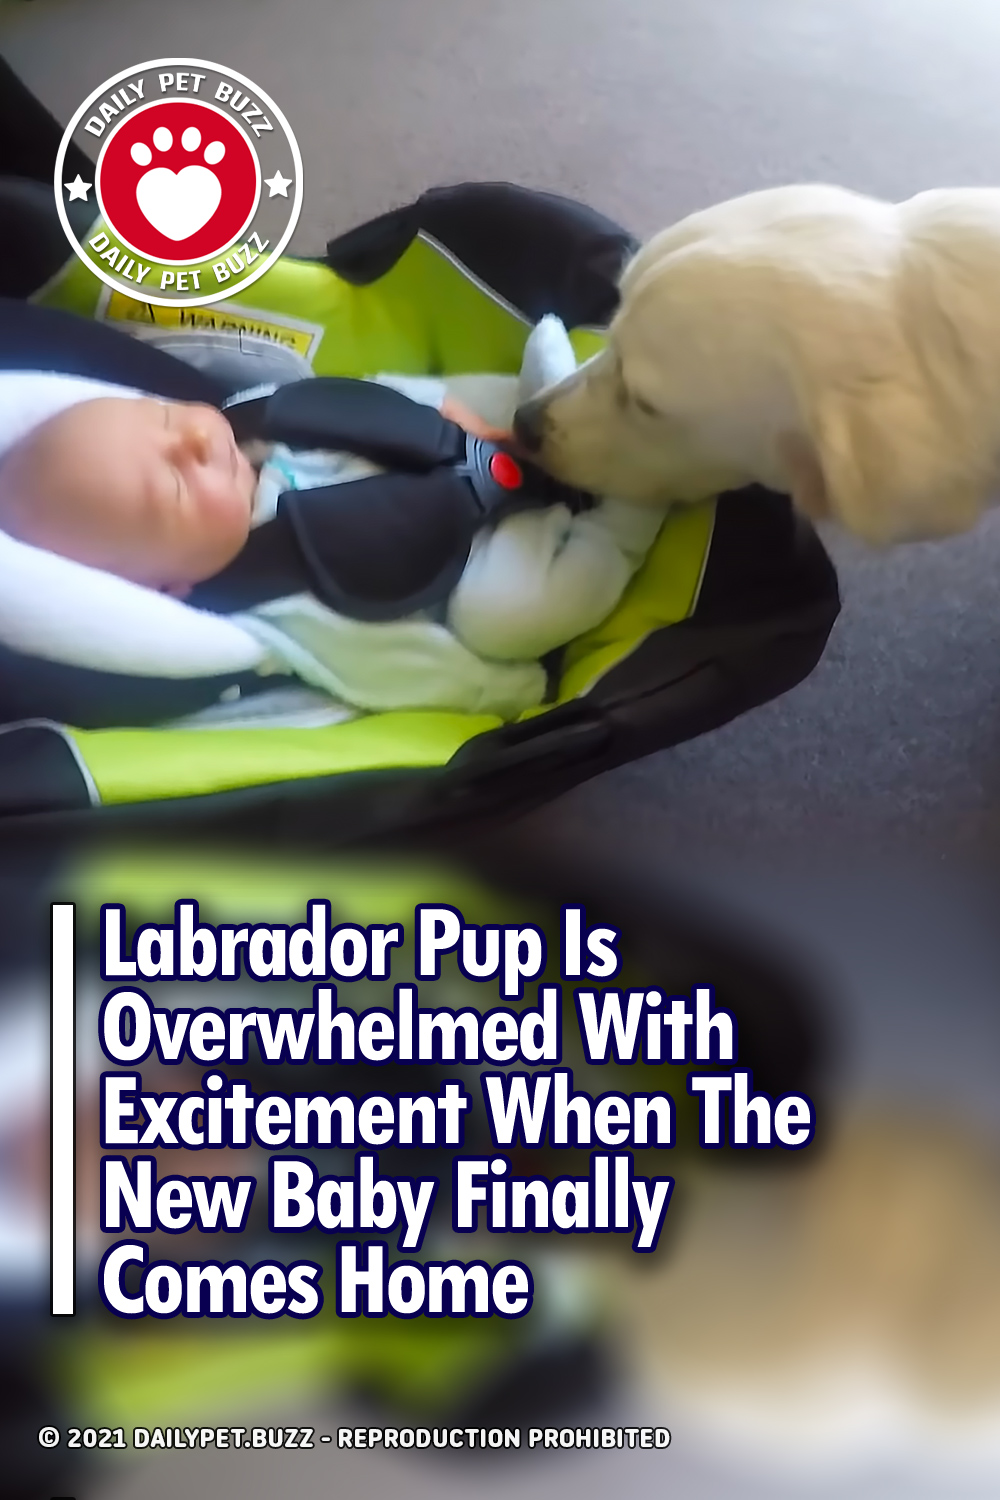 Labrador Pup Is Overwhelmed With Excitement When The New Baby Finally Comes Home